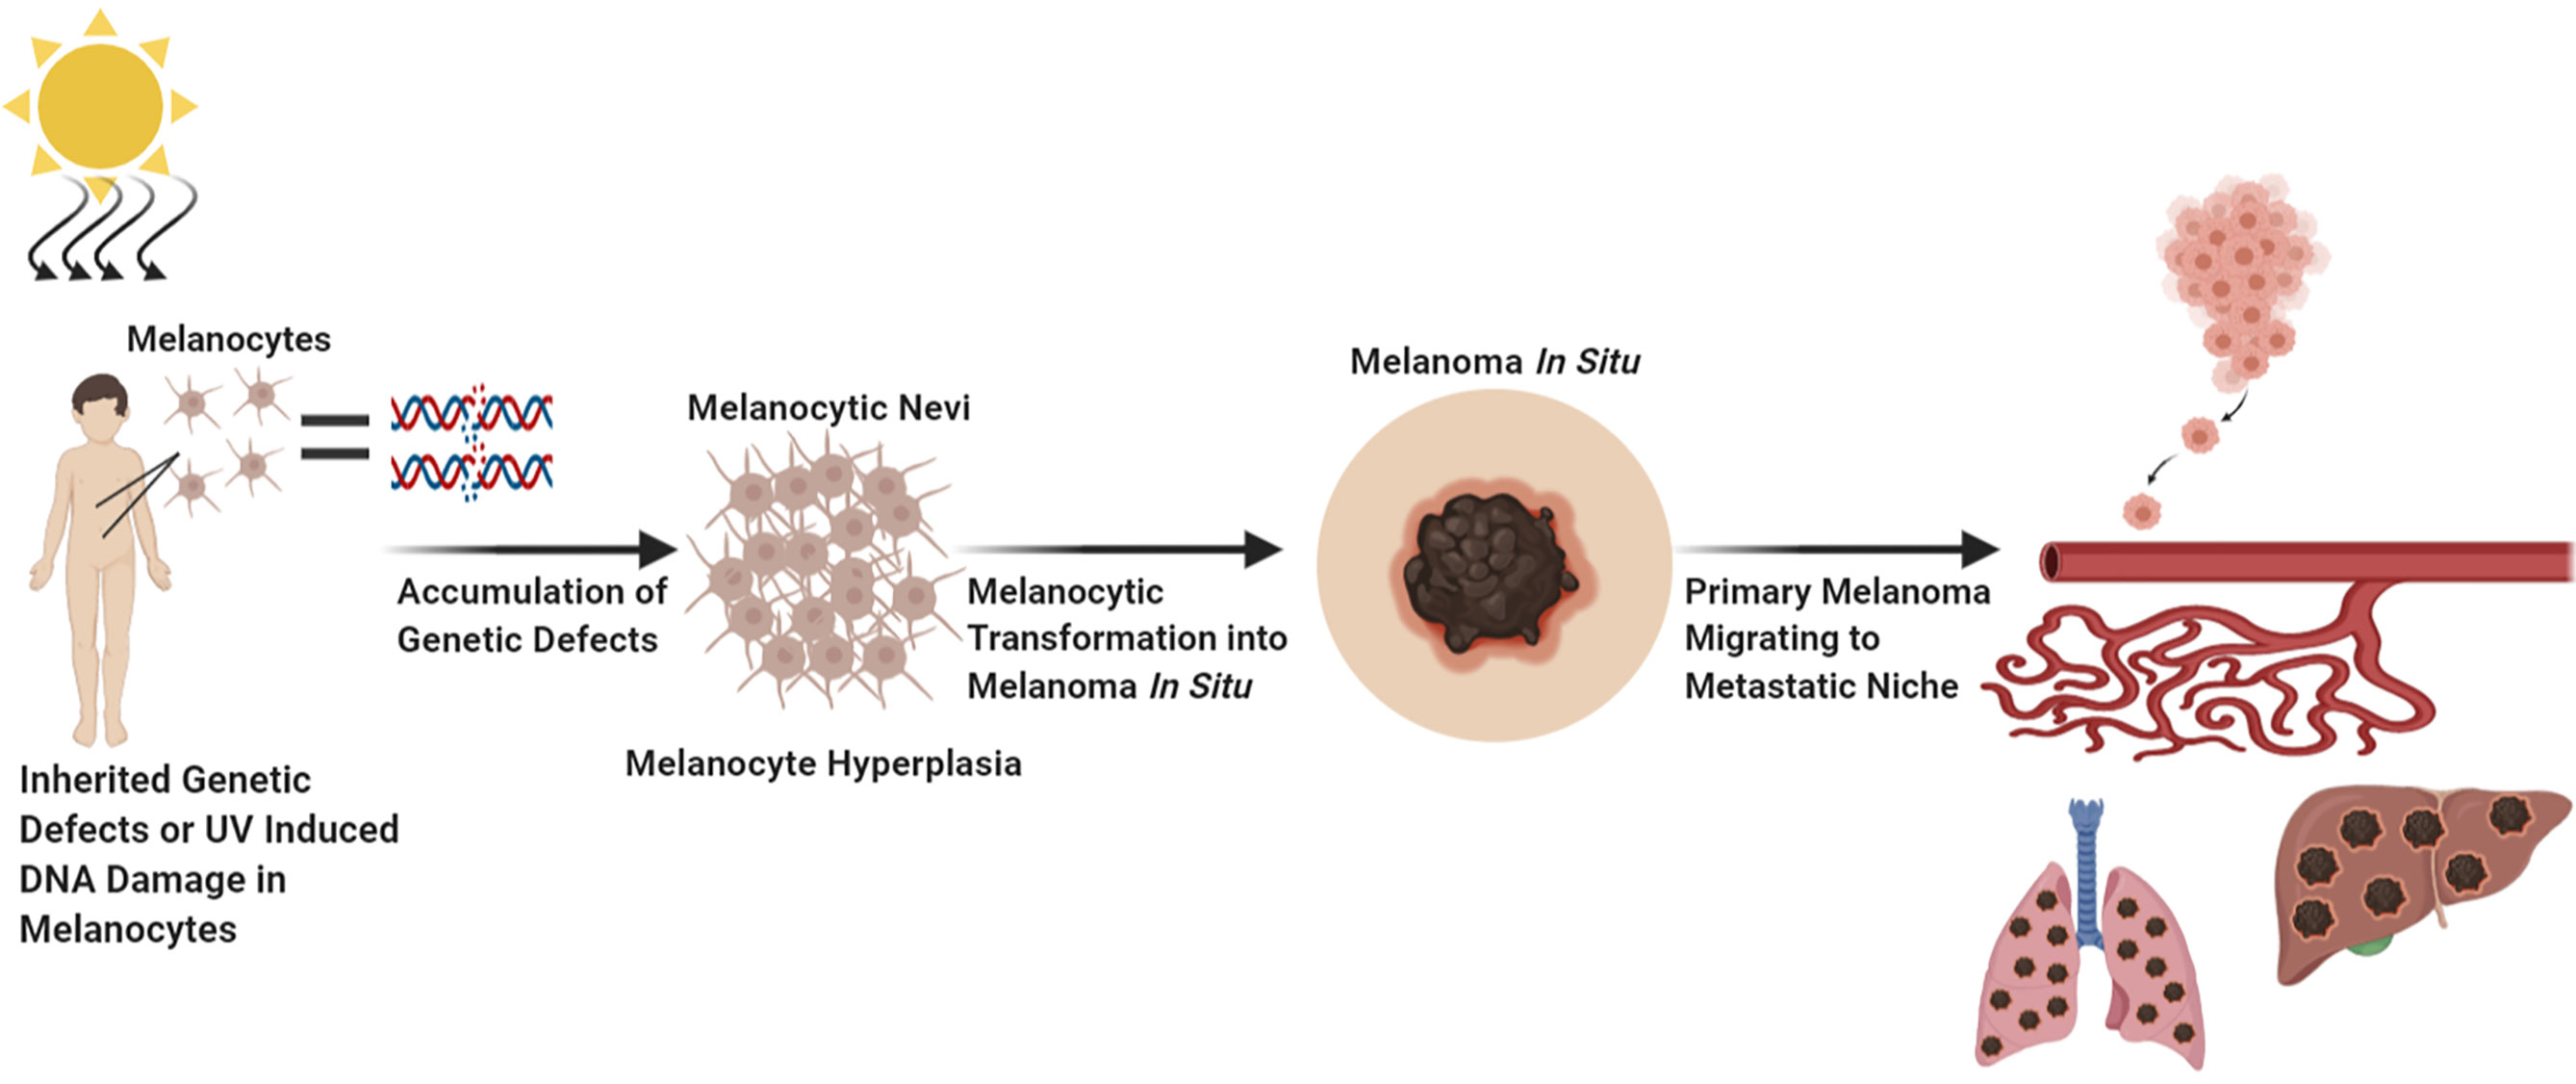 Melanoma look does like what a Slide show: